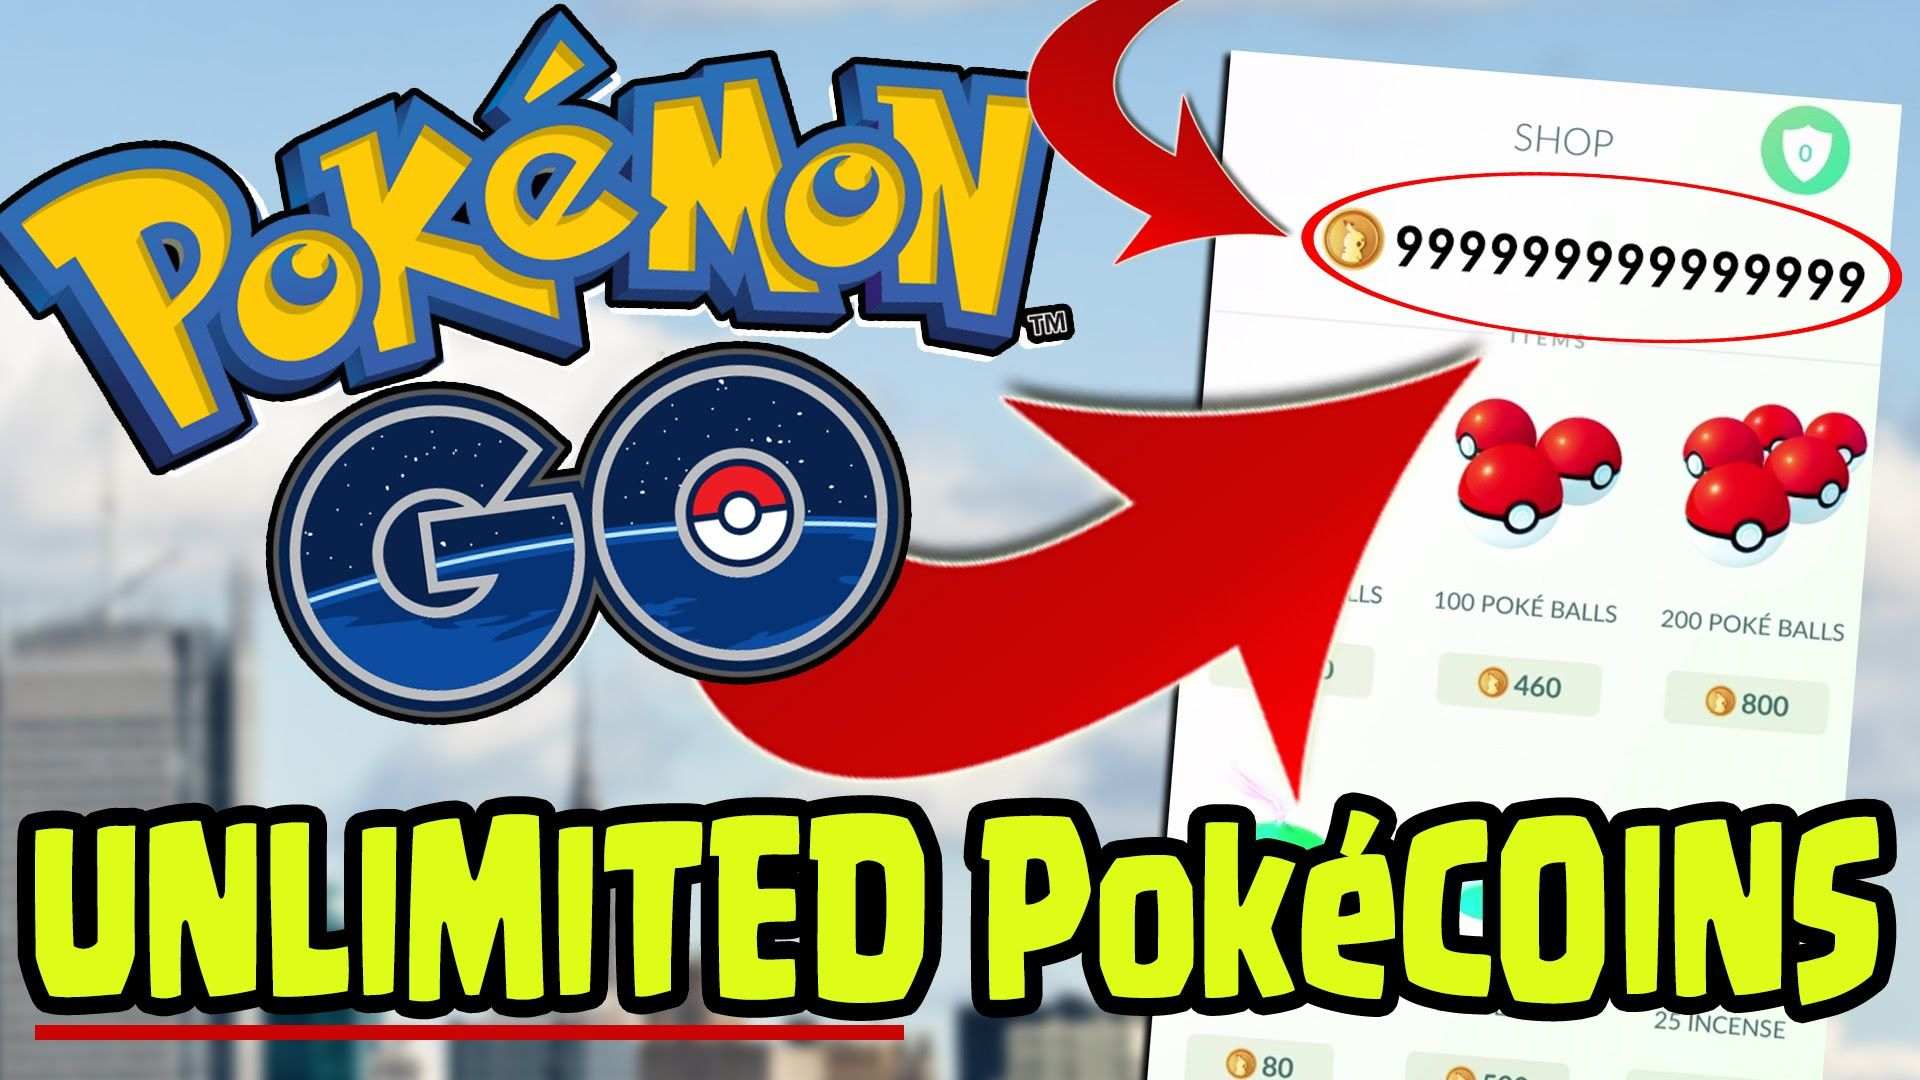 Get Unlimited Pokecoins & Pokeballs For Free! Tested [November 2020]